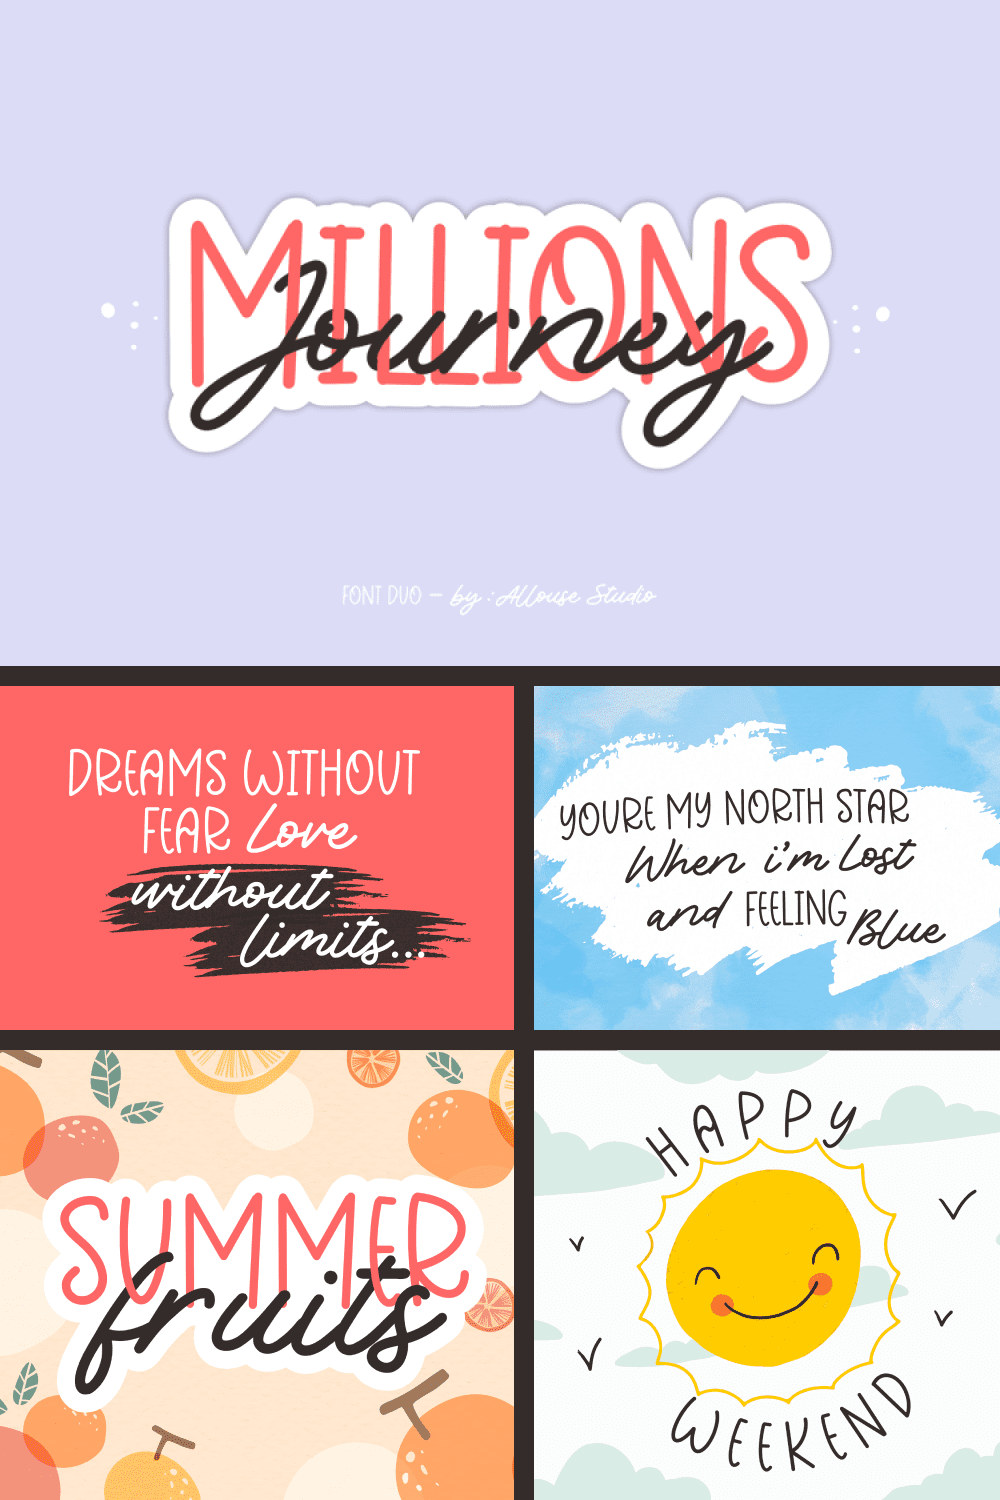 Cheerful and joyful font. Looks great in a sentence.